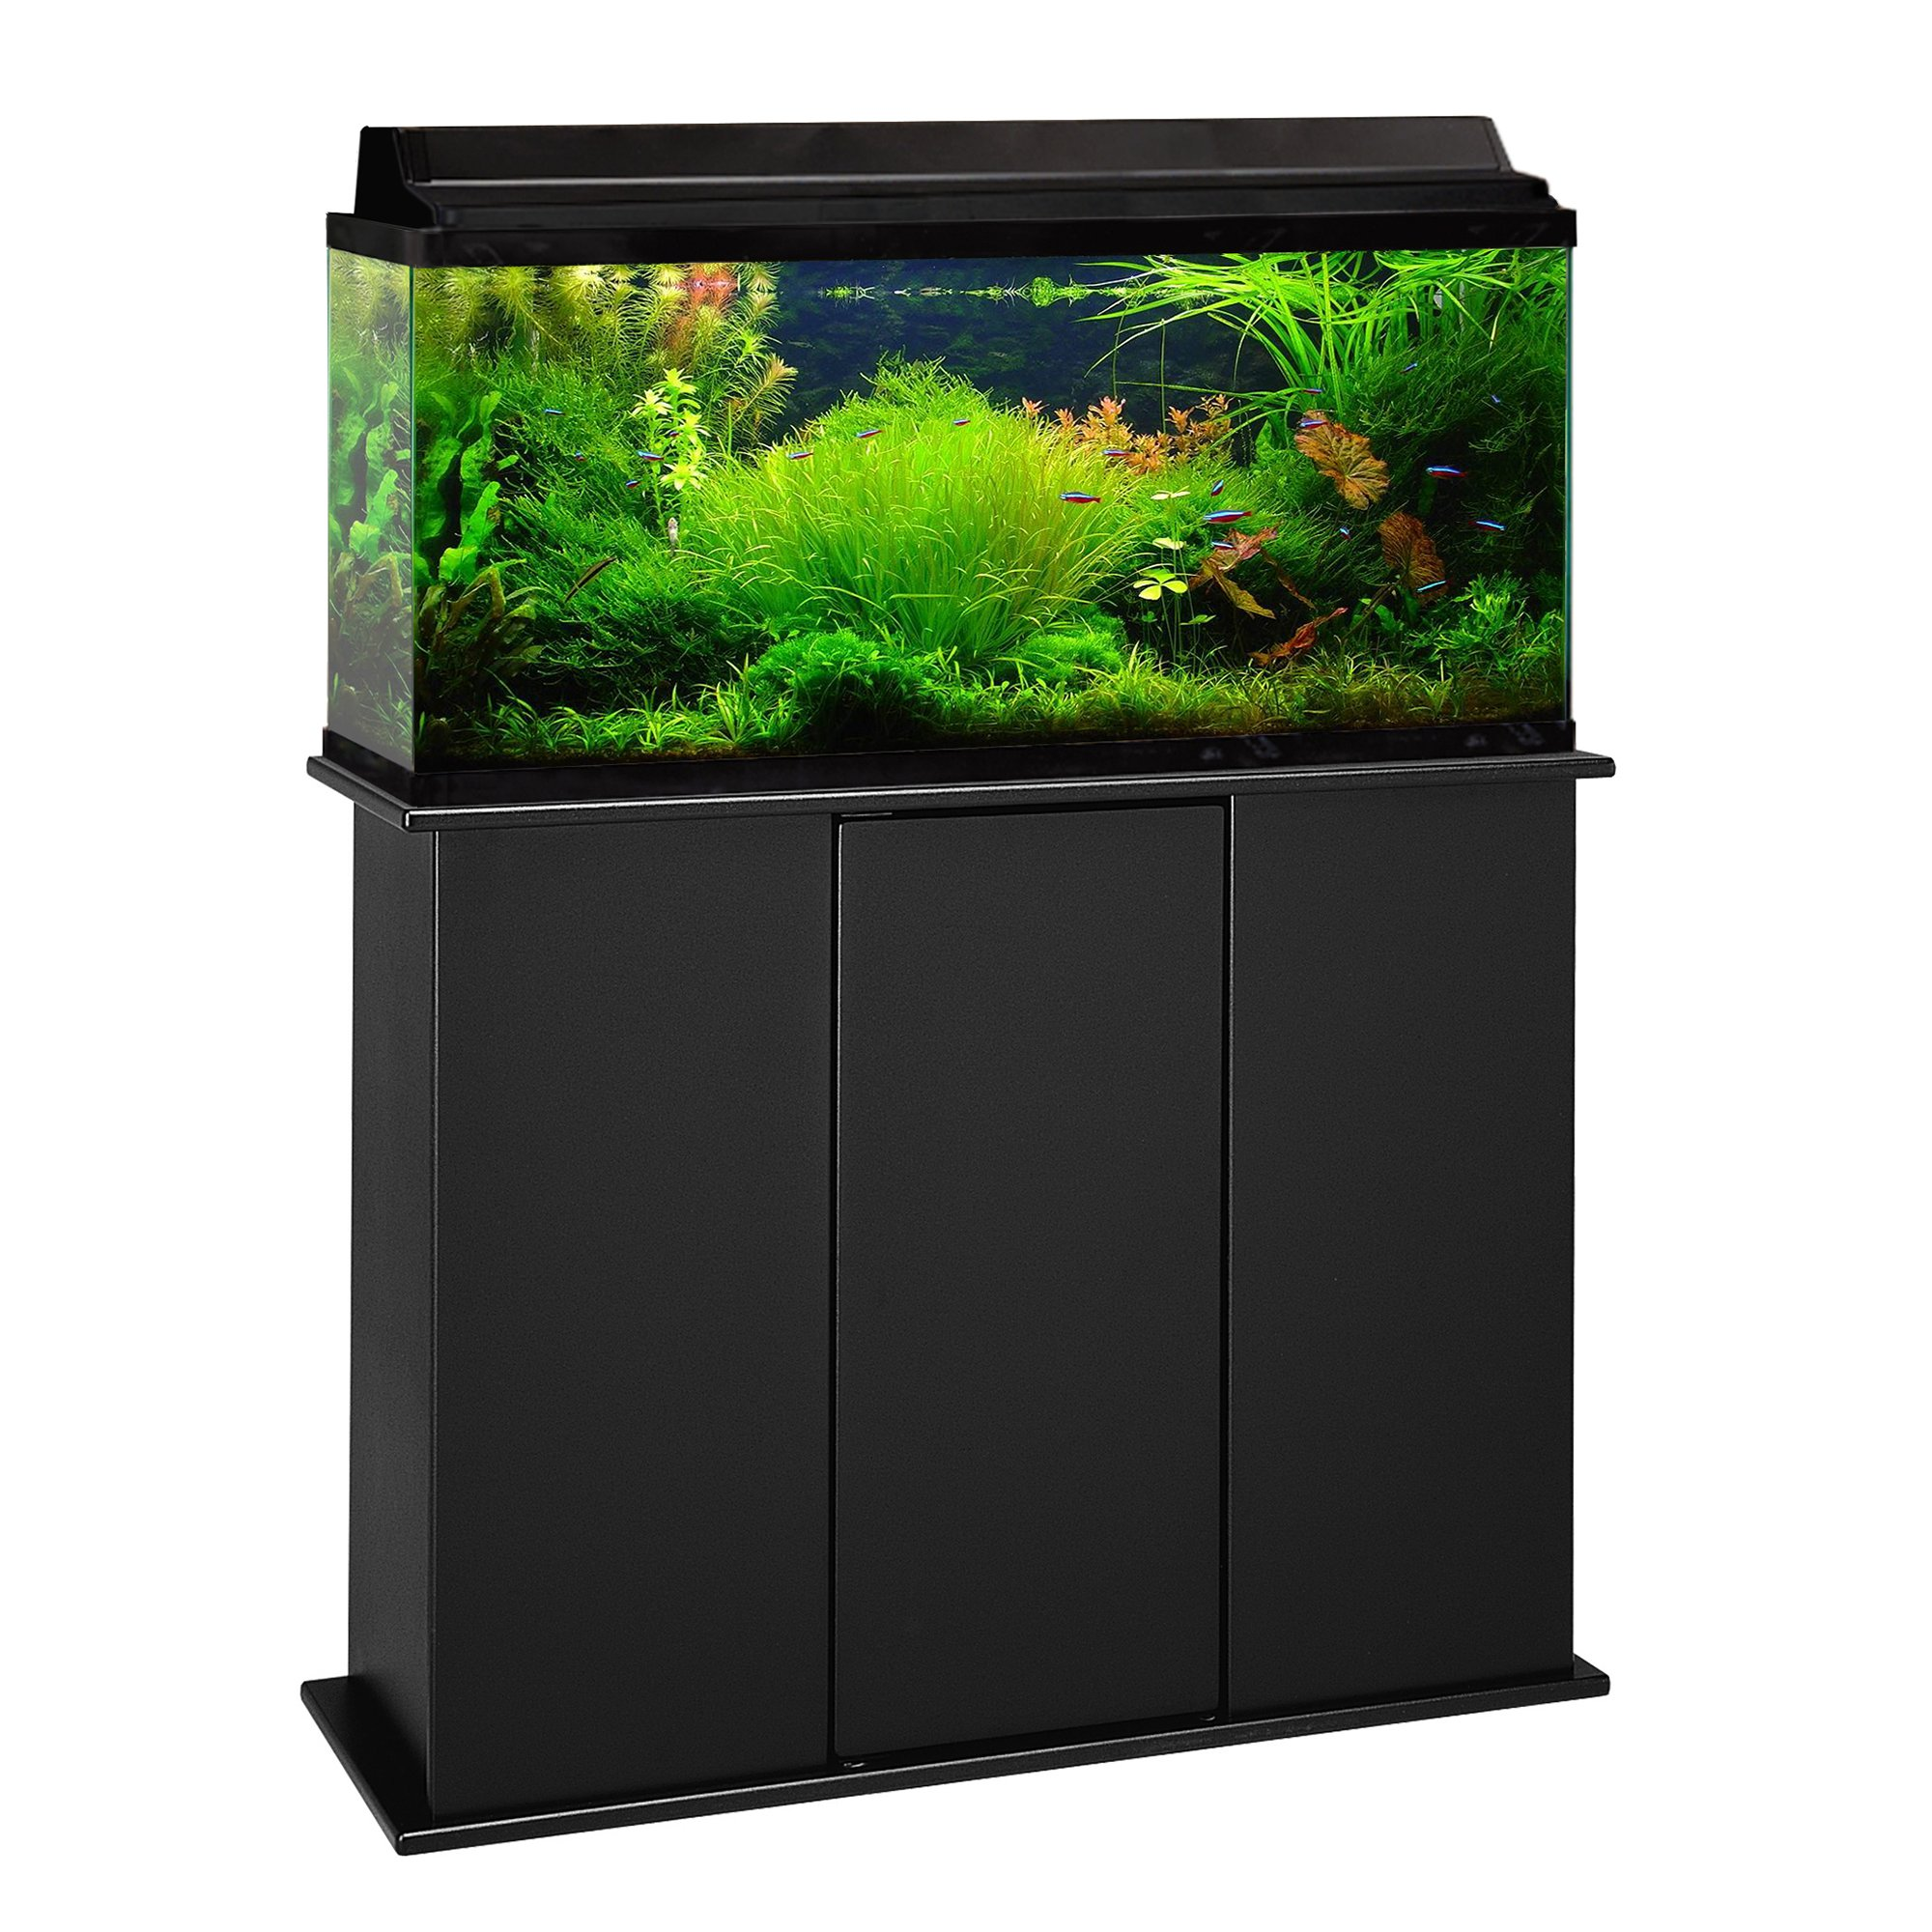 ... Fundamentals 30/38/45 Gallon Upright Aquarium Stand Petco Store